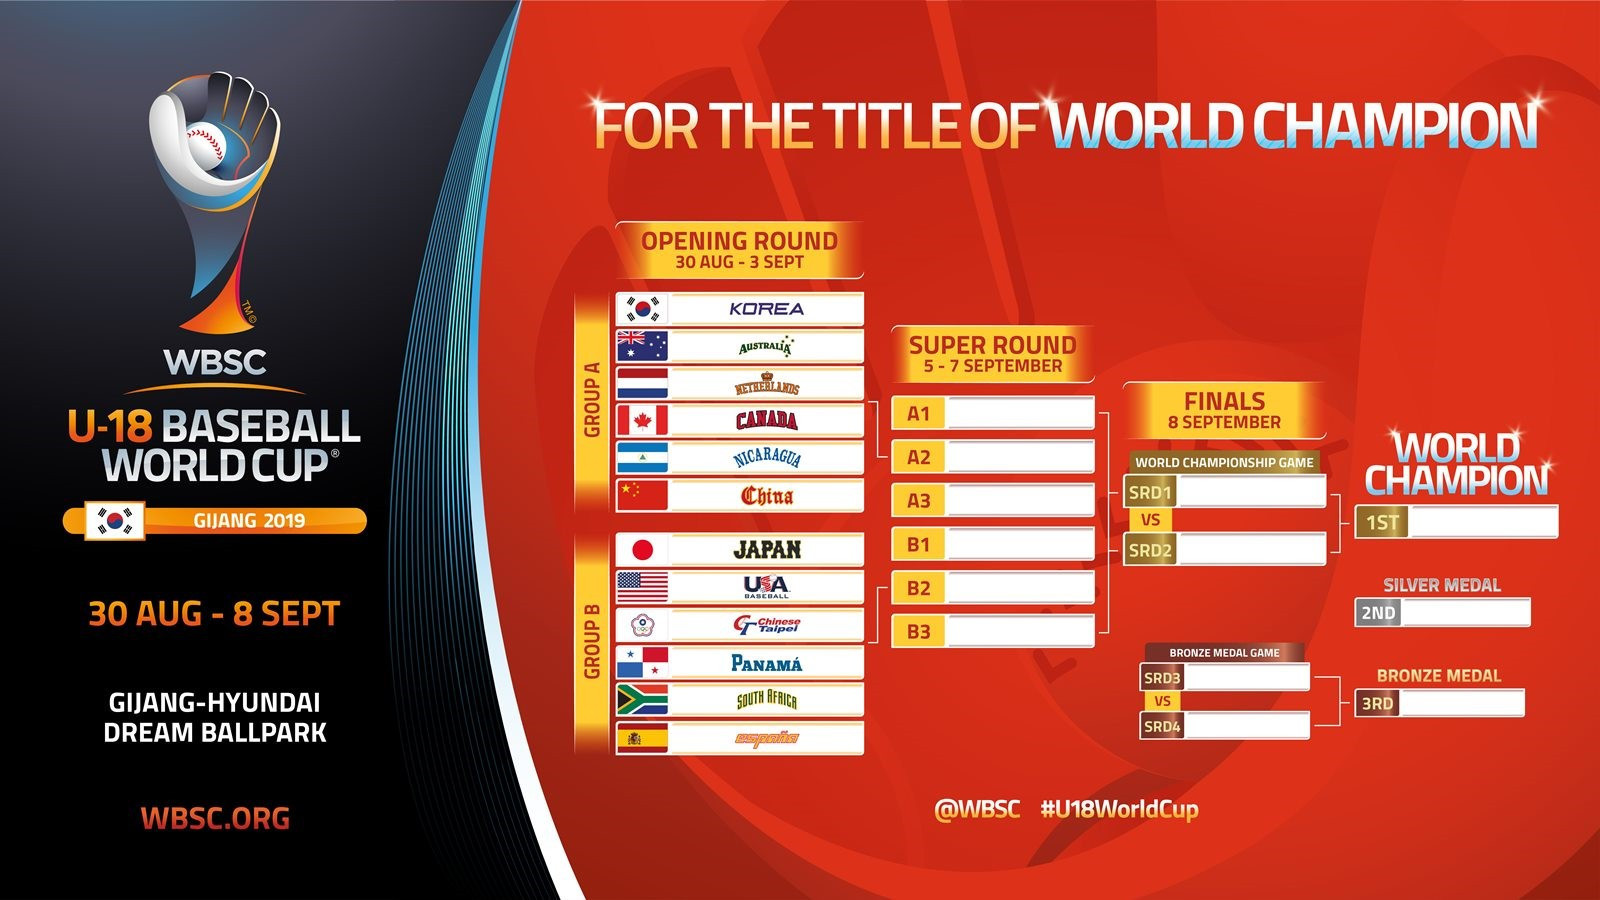 Hosts South Korea in group with Australia and the Netherlands at Under-18 Baseball World Cup